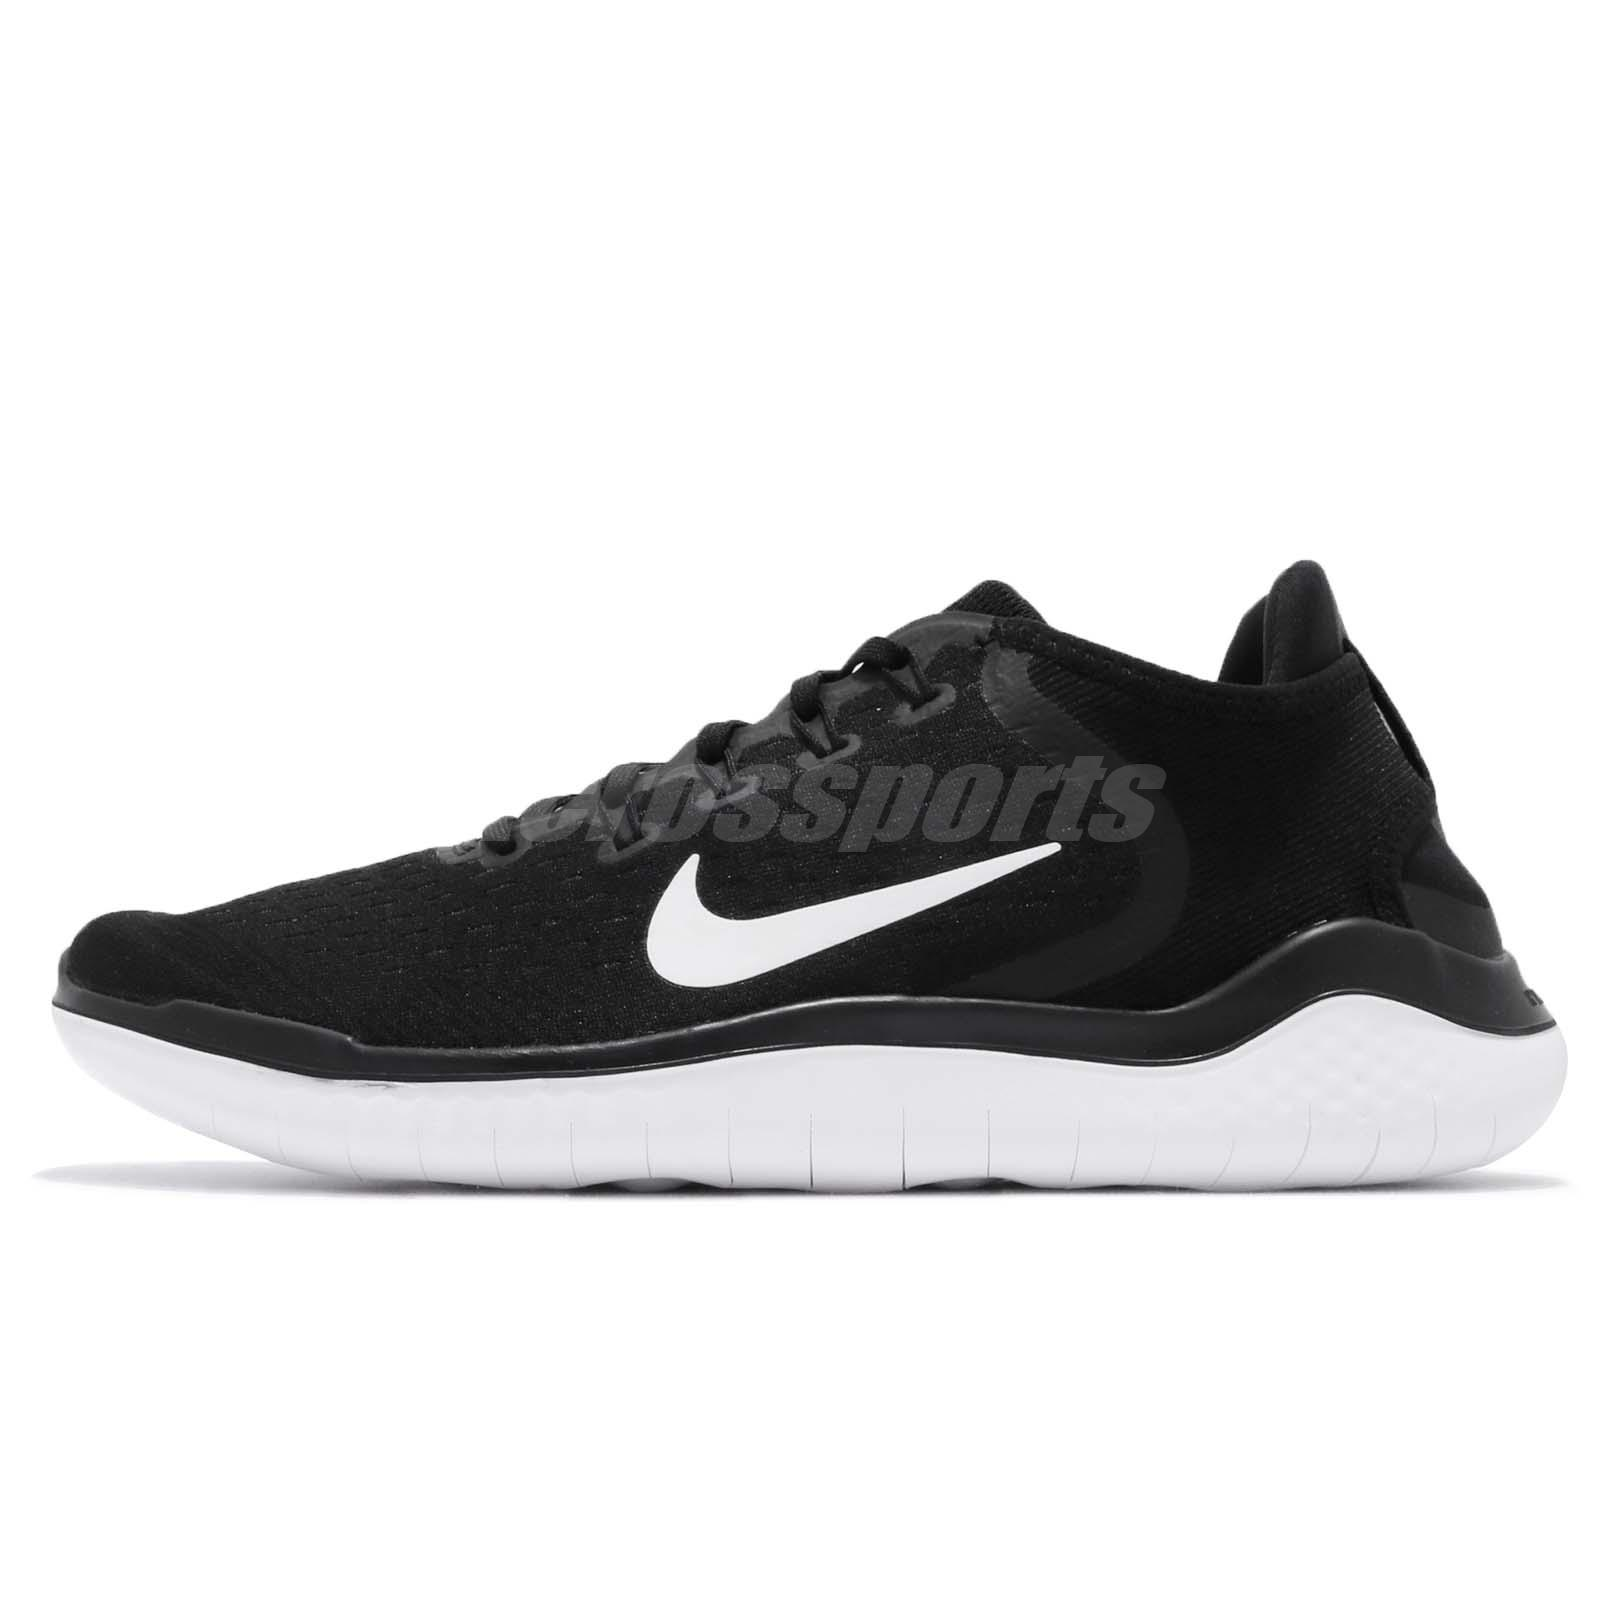 Nike Free RN 2018 Run Black White Men Running Shoes Sneakers 942836001